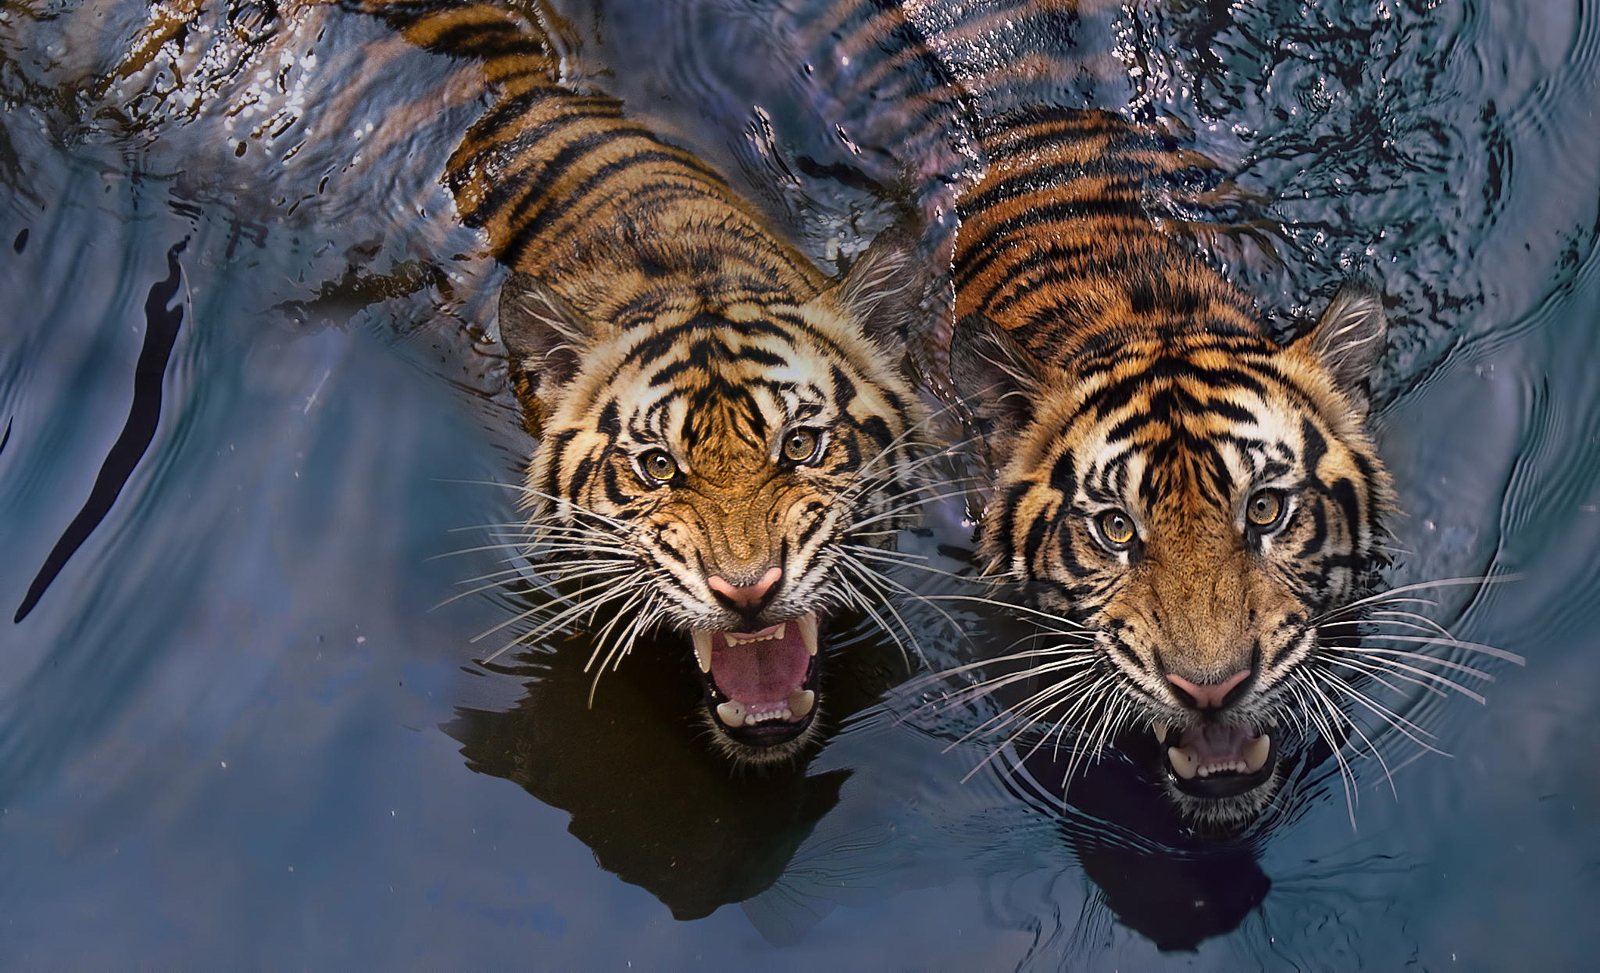 Tiger Photography | 30+ Tigers Photos That Will Leave You Spellbound